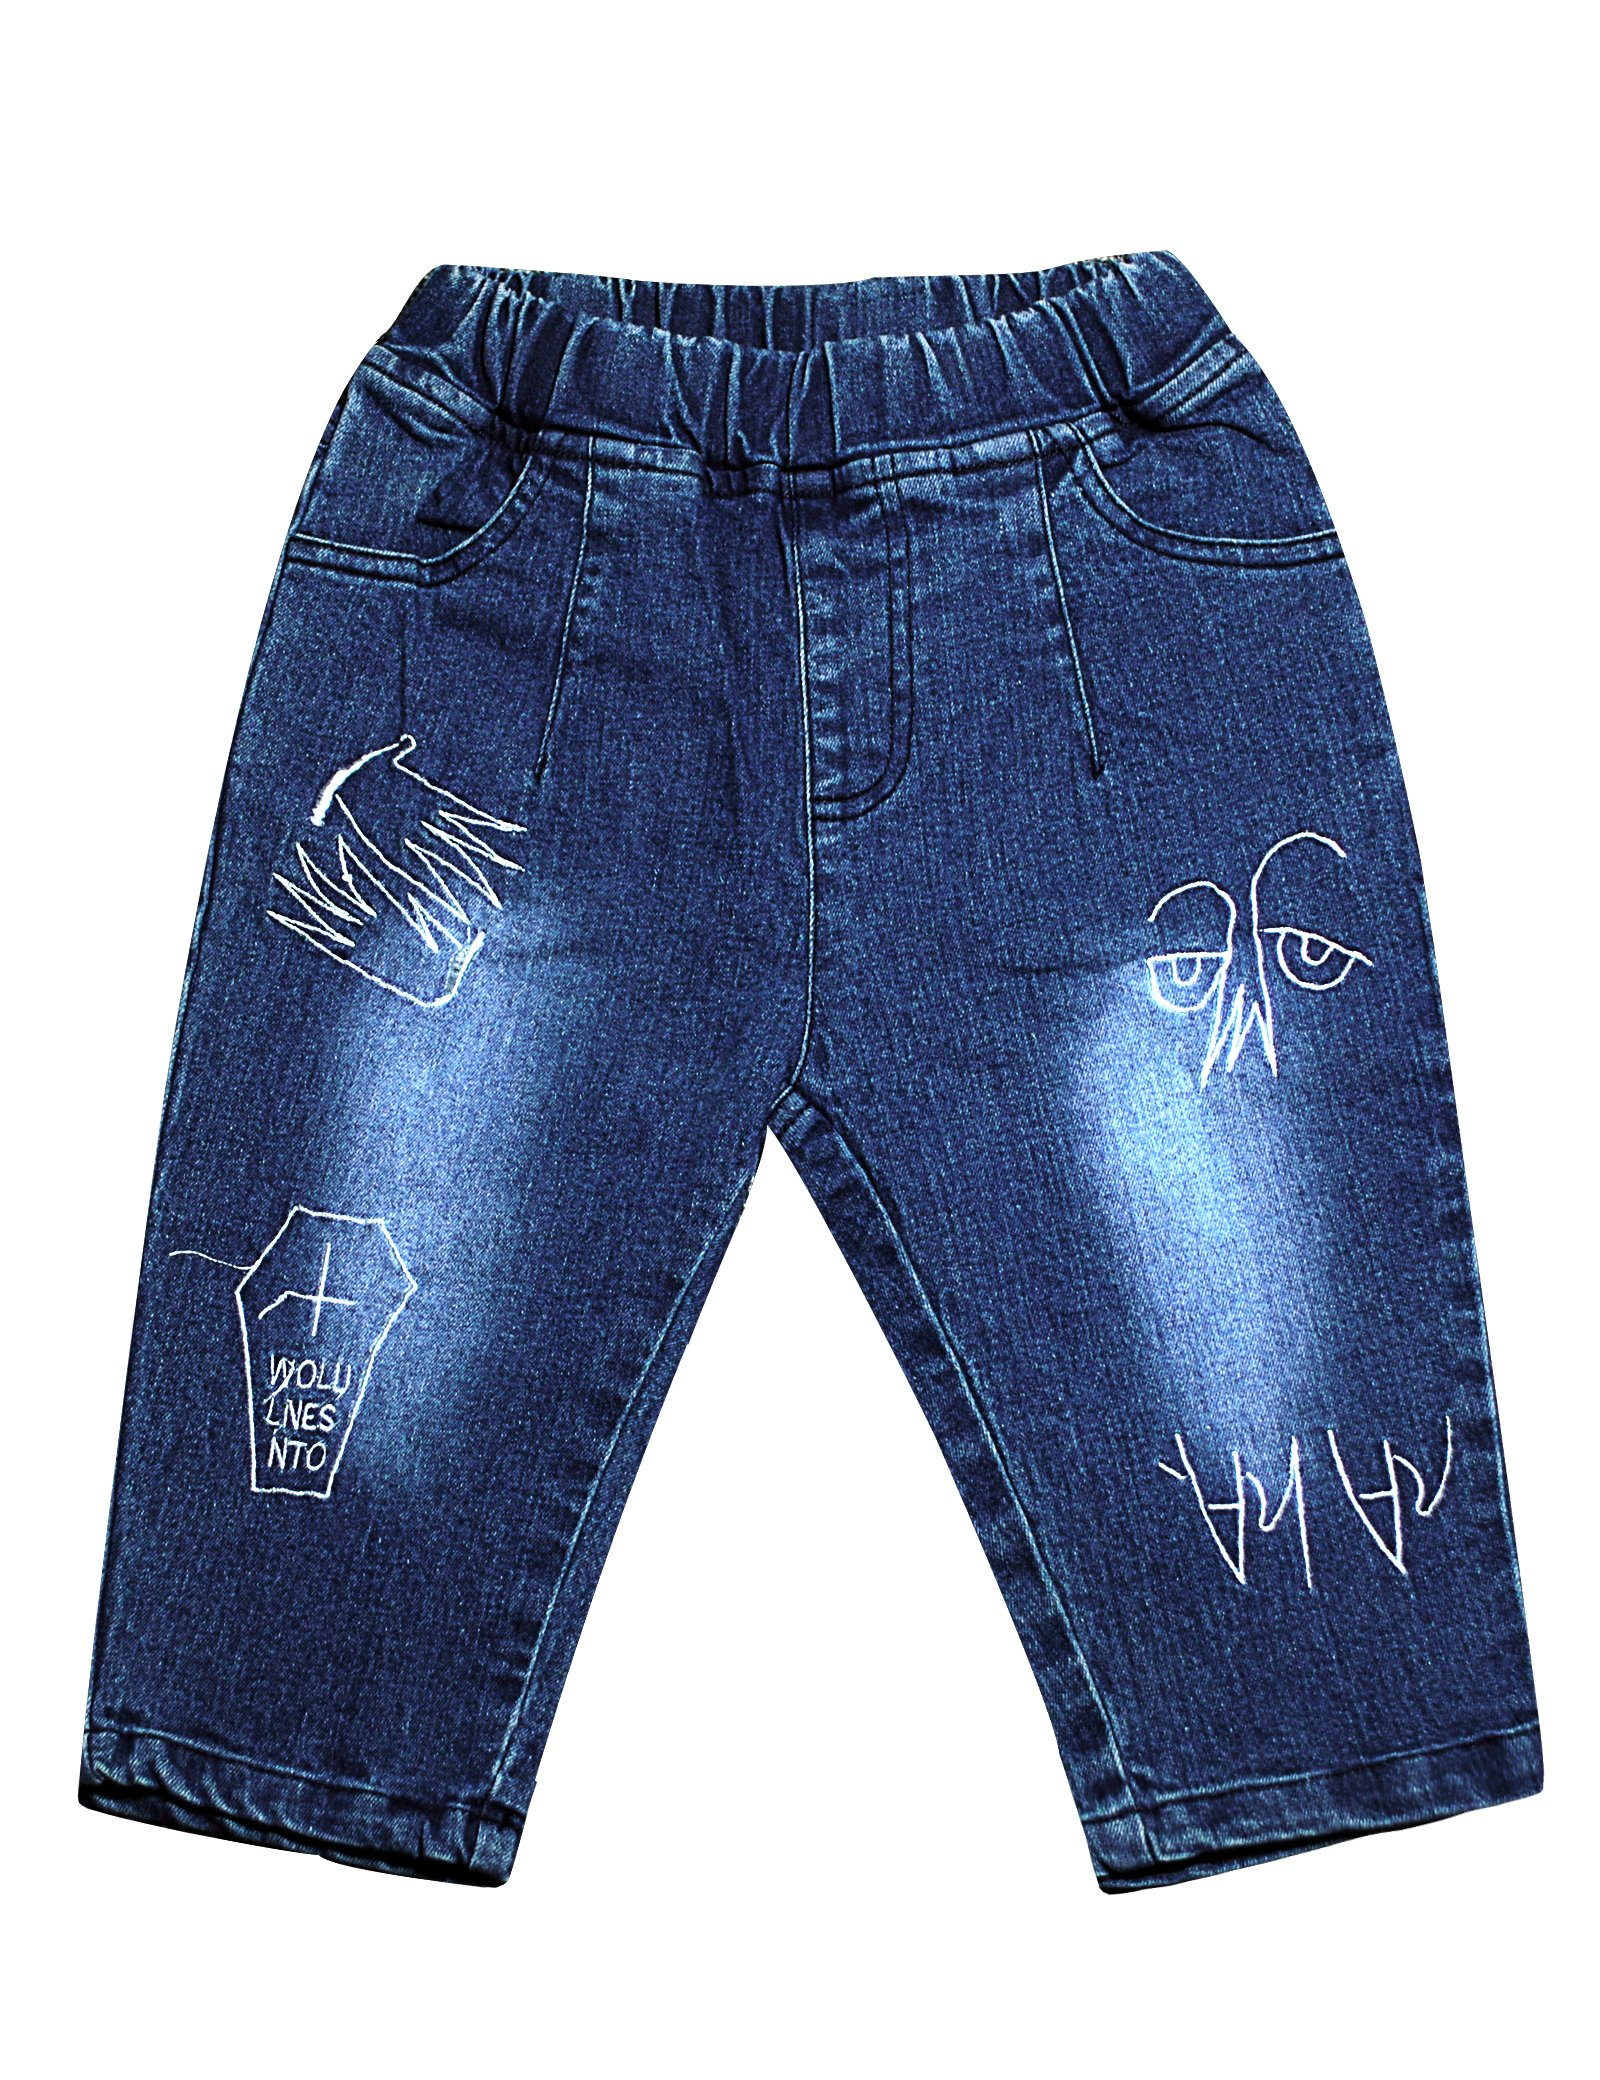 lorpops Boys' Summer Embroidered Stretchy Jean Capri Pants (Blue, 10)